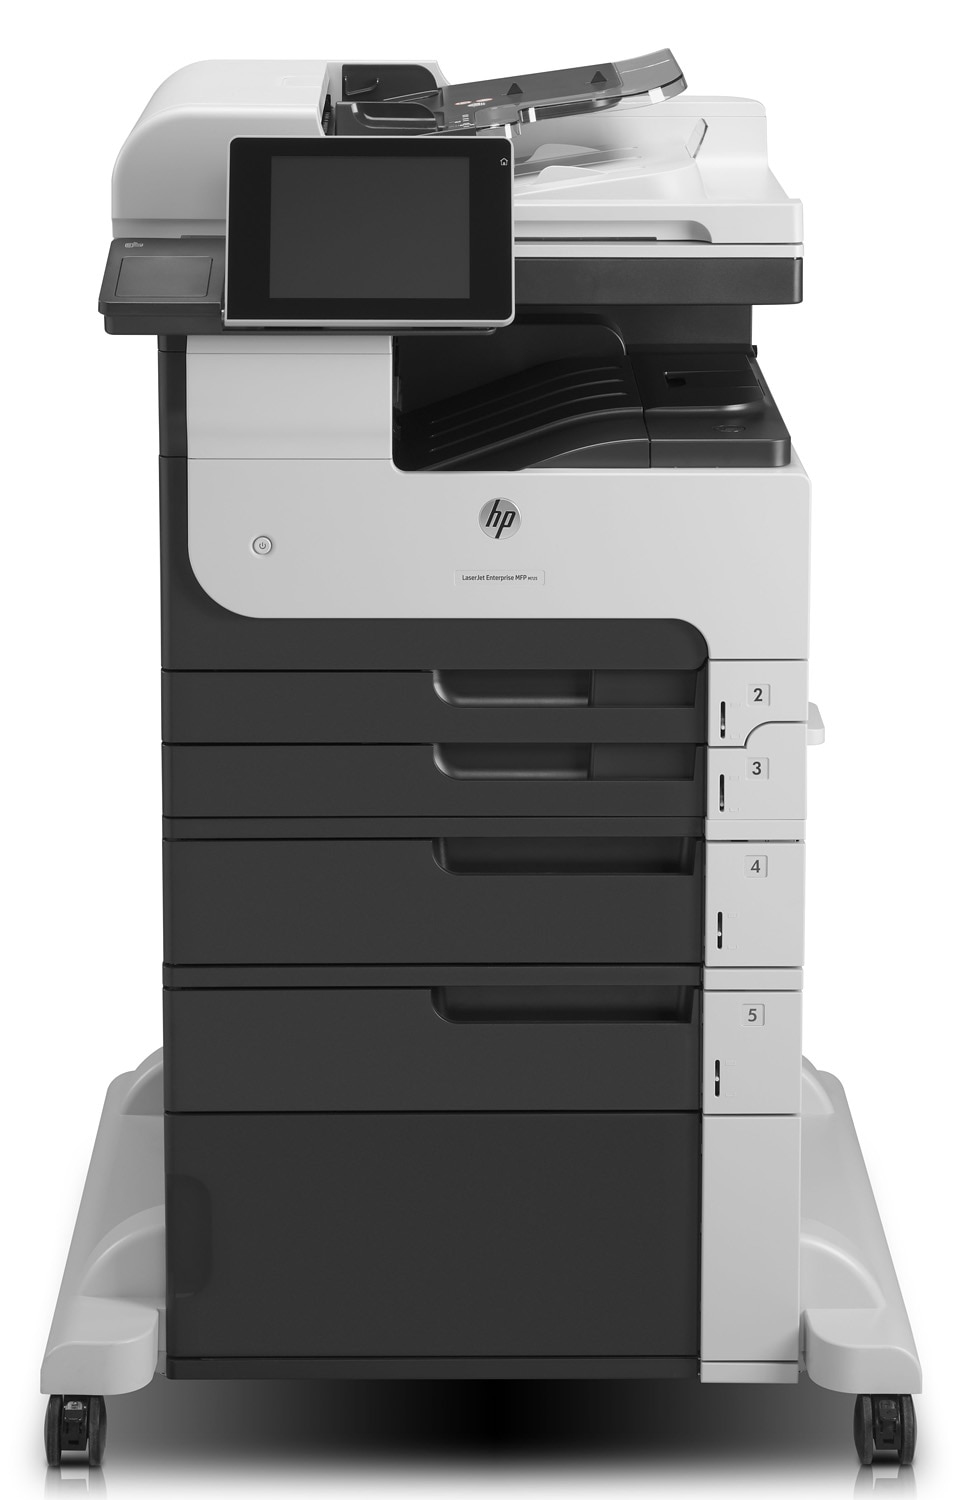 CF067A HP LaserJet Enterprise M725F M725 A3 A4 Mono Multifunction Laser Printer - Refurbished with 3 months RTB warranty